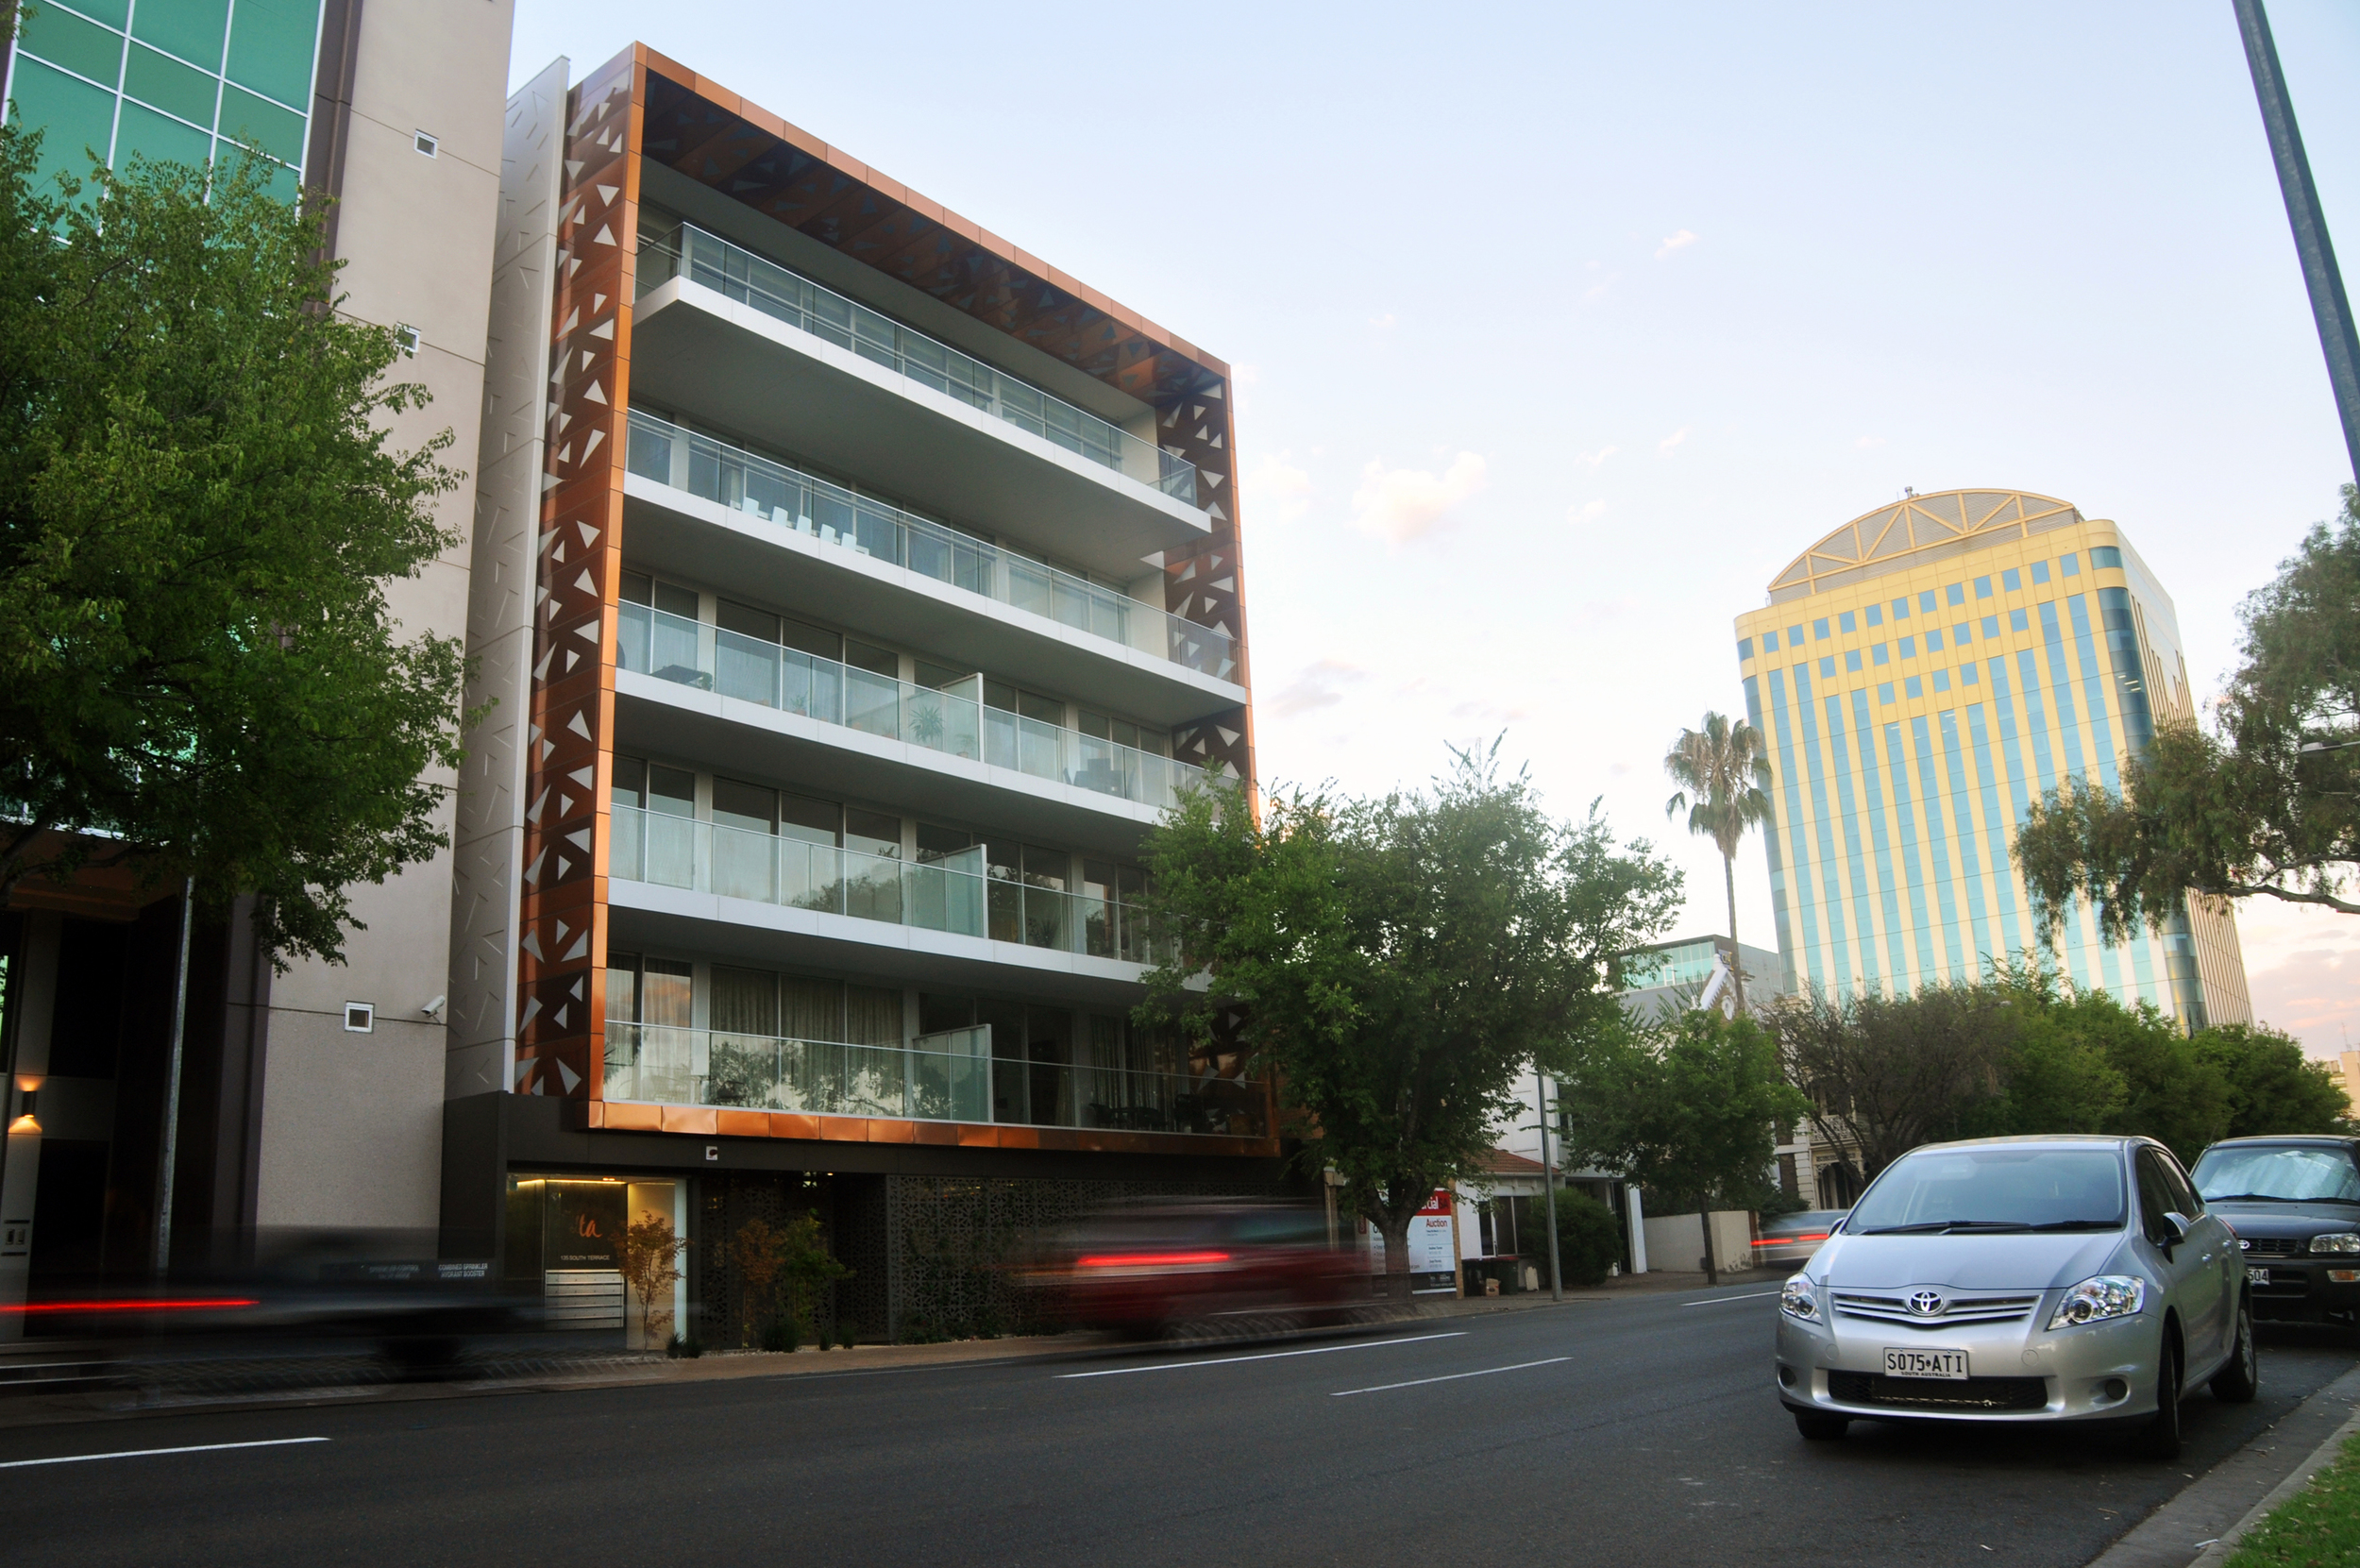 Alta apartments introducea newstandard of design to South Terrace